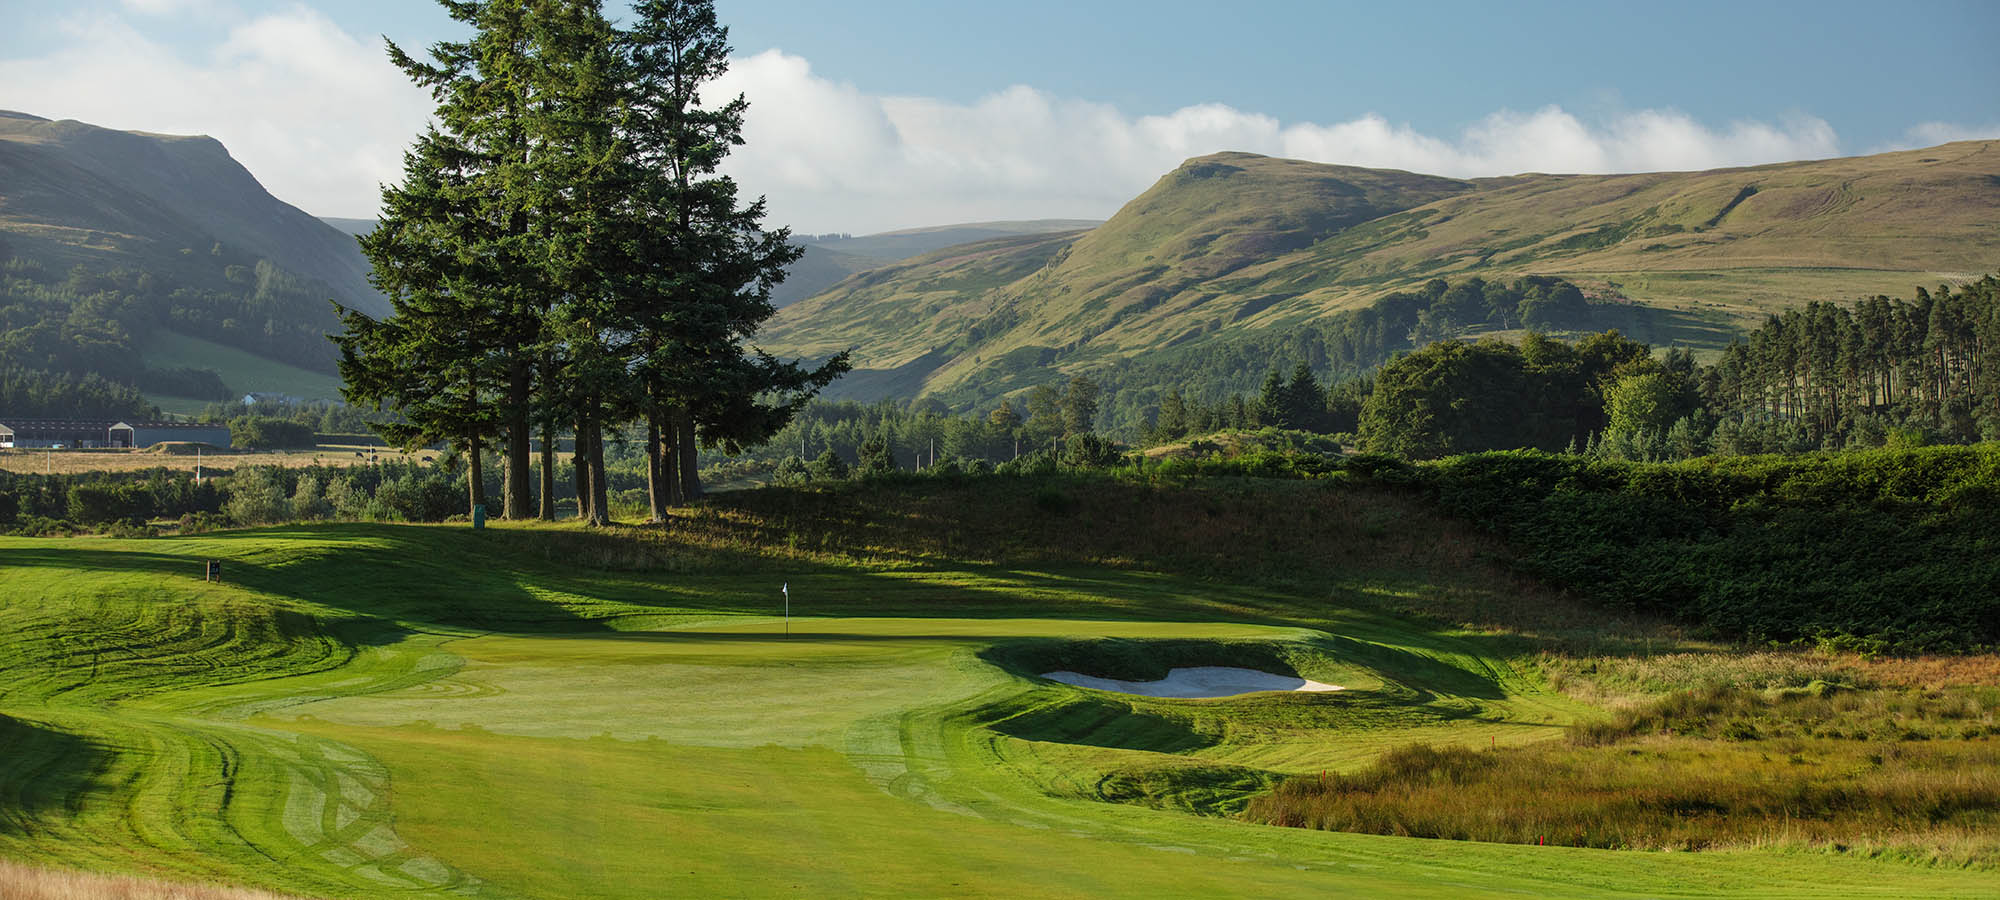 http://View%20towards%20the%20Glendevon%20and%20Ochil%20hills%20from%20the%201st%20tee%20on%20the%20PGA